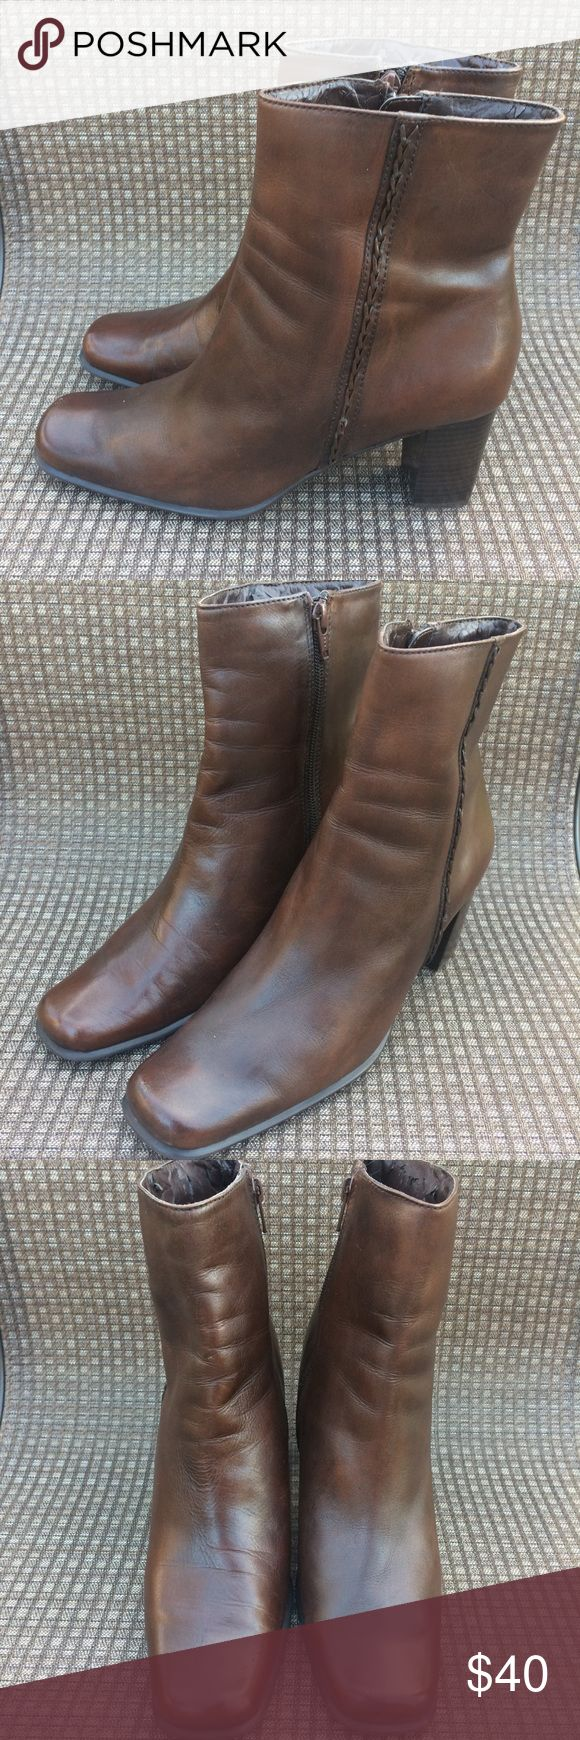 🌺🌺St. John's Bay Booties Pre-owned St. John's Bay brown booties. They are made of genuine leather upper and manmade lining. See photos for imperfections. Creases present in leather, inner manmade lining is stripping and very minimal scratches. Overall, the boots are in good condition. ASKING PRICE OR BEST OFFER! St. John's Bay Shoes Ankle Boots & Booties